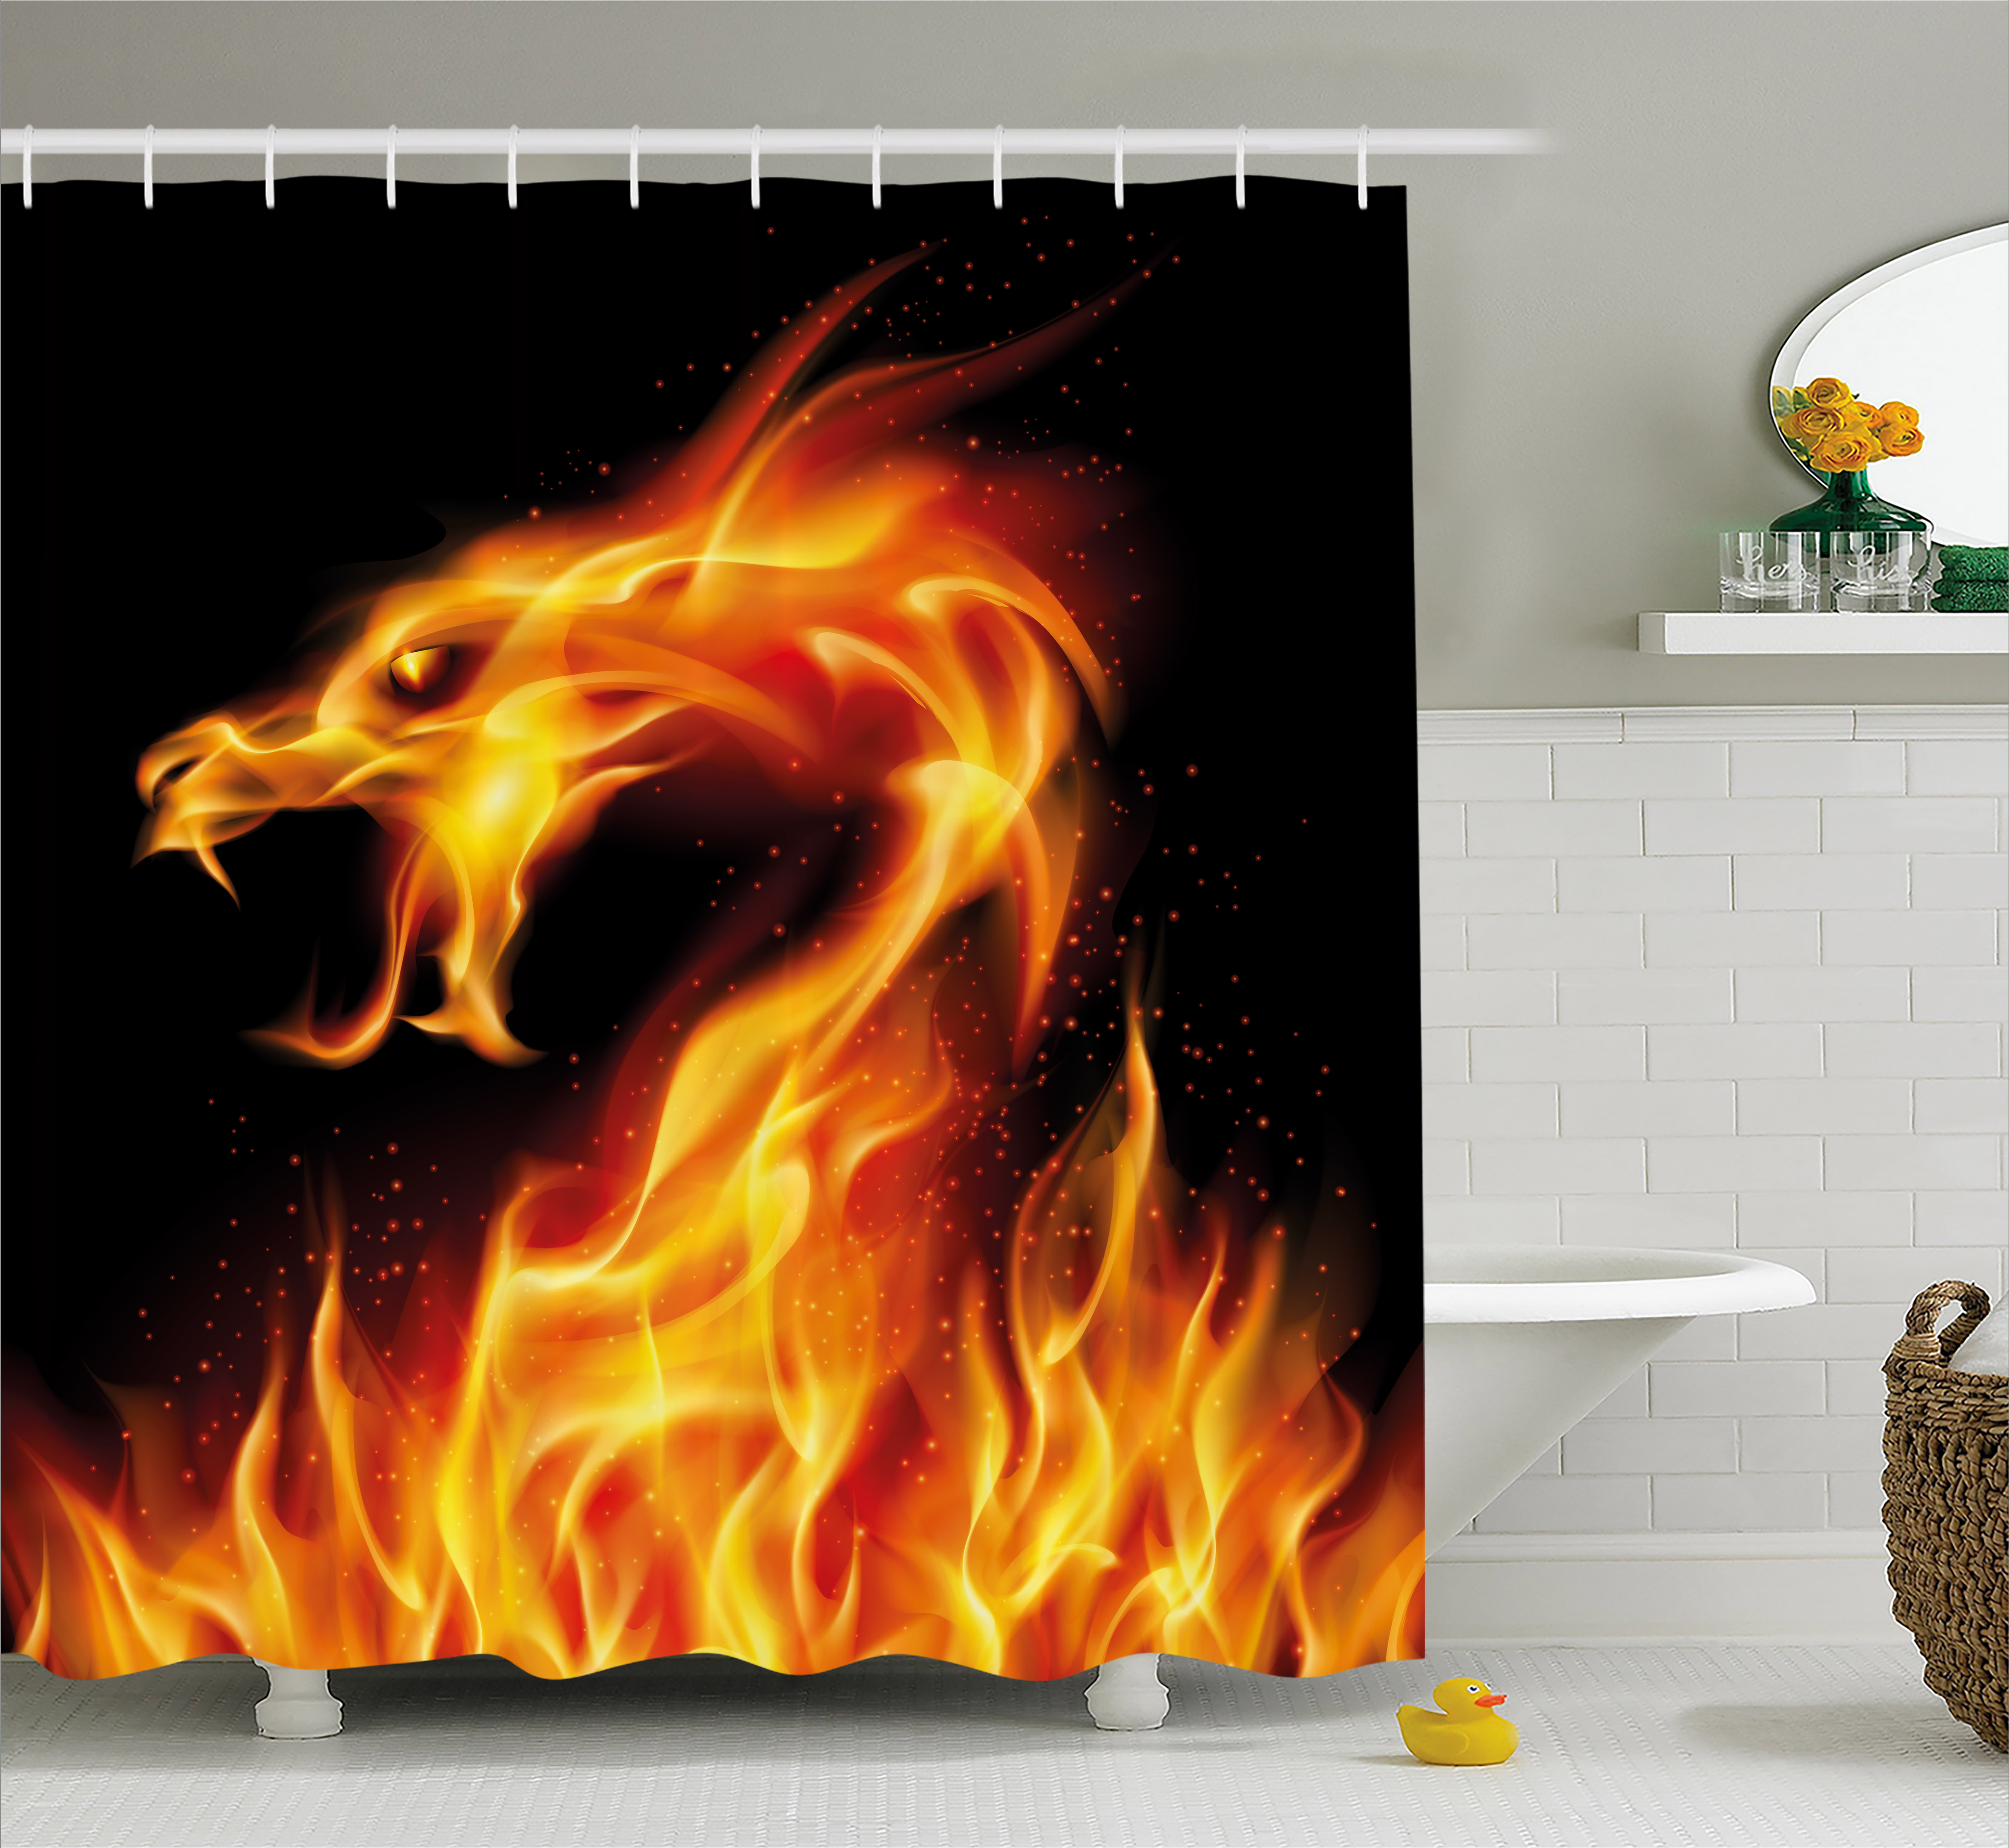 Dragon Shower Curtain, Abstract Fiery Creature on Black Background Legendary Fantastic Asian Illustration, Fabric Bathroom Set with Hooks, 69W X 84L Inches Extra Long, Marigold Red, by Ambesonne